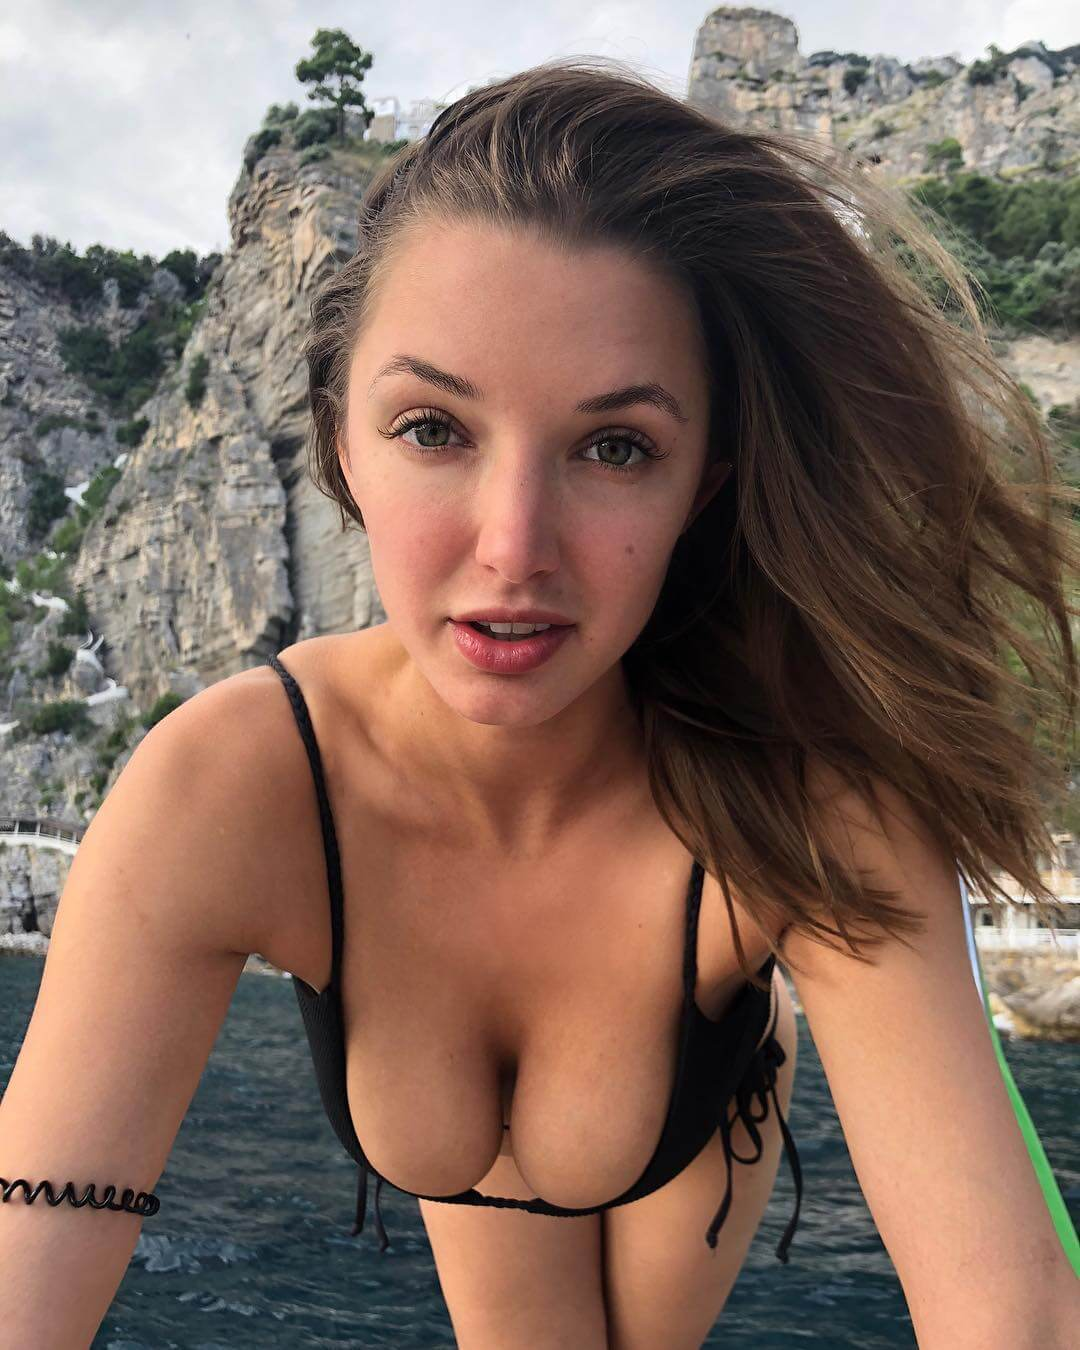 Alyssa Arce Nude 49 hot pictures of alyssa arce which expose her sexy body